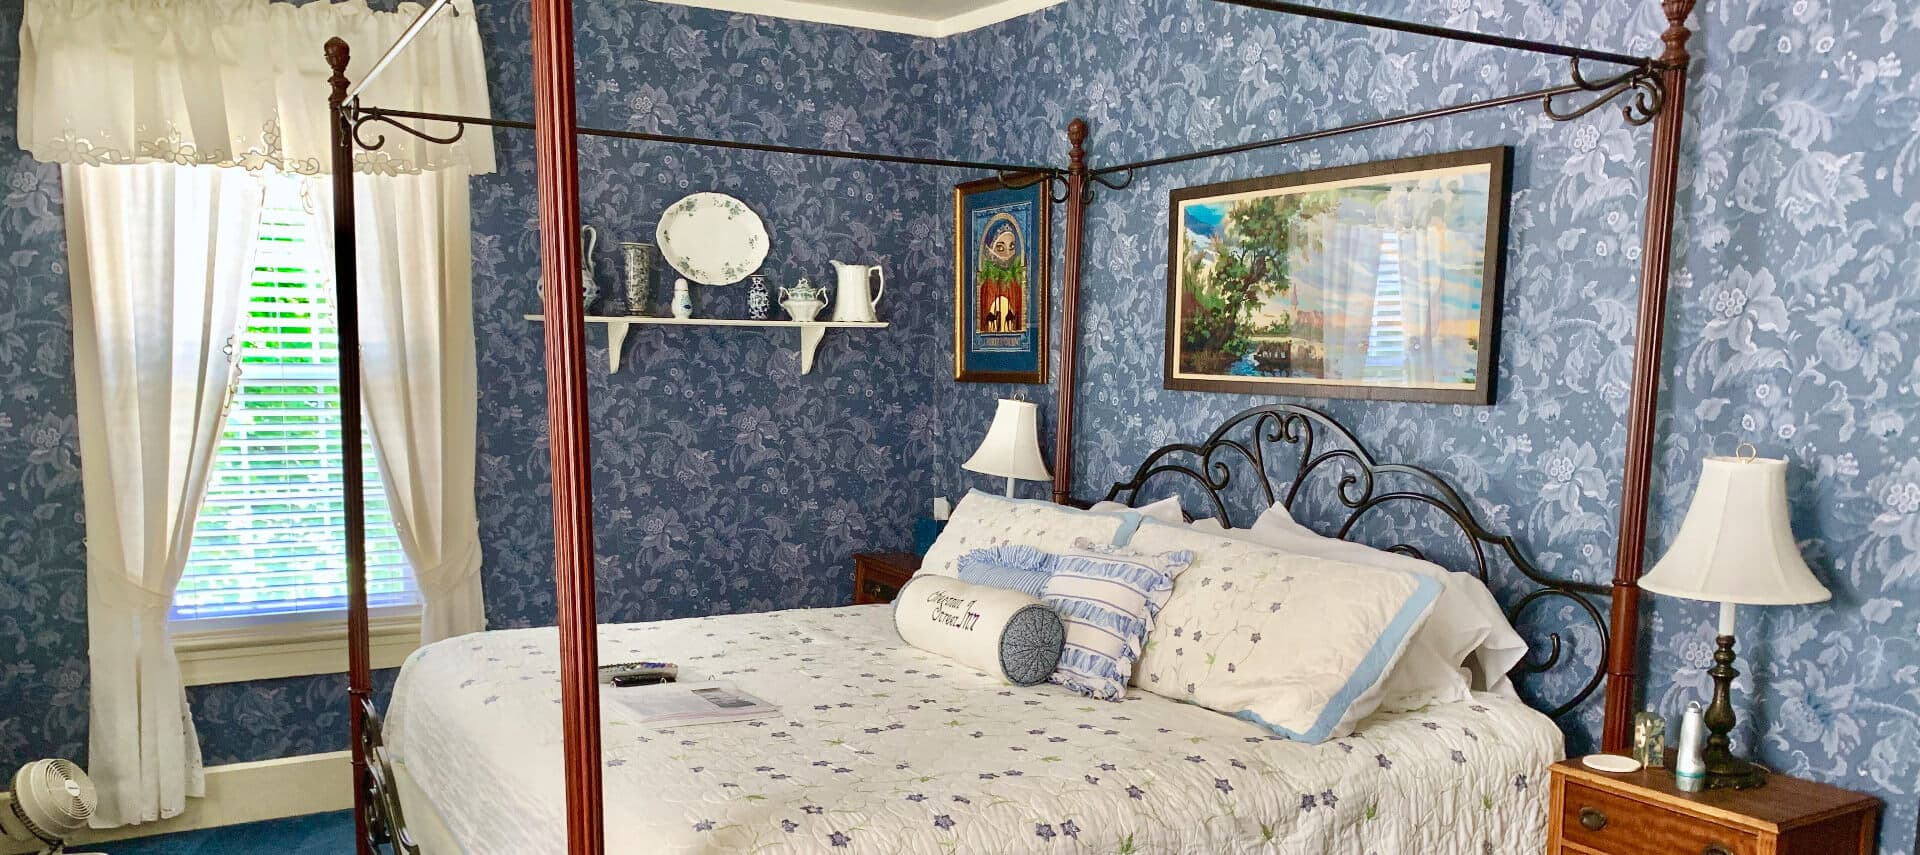 Lovely bedroom decoted in blues and creams with a wooden four-post bed and bright windows.